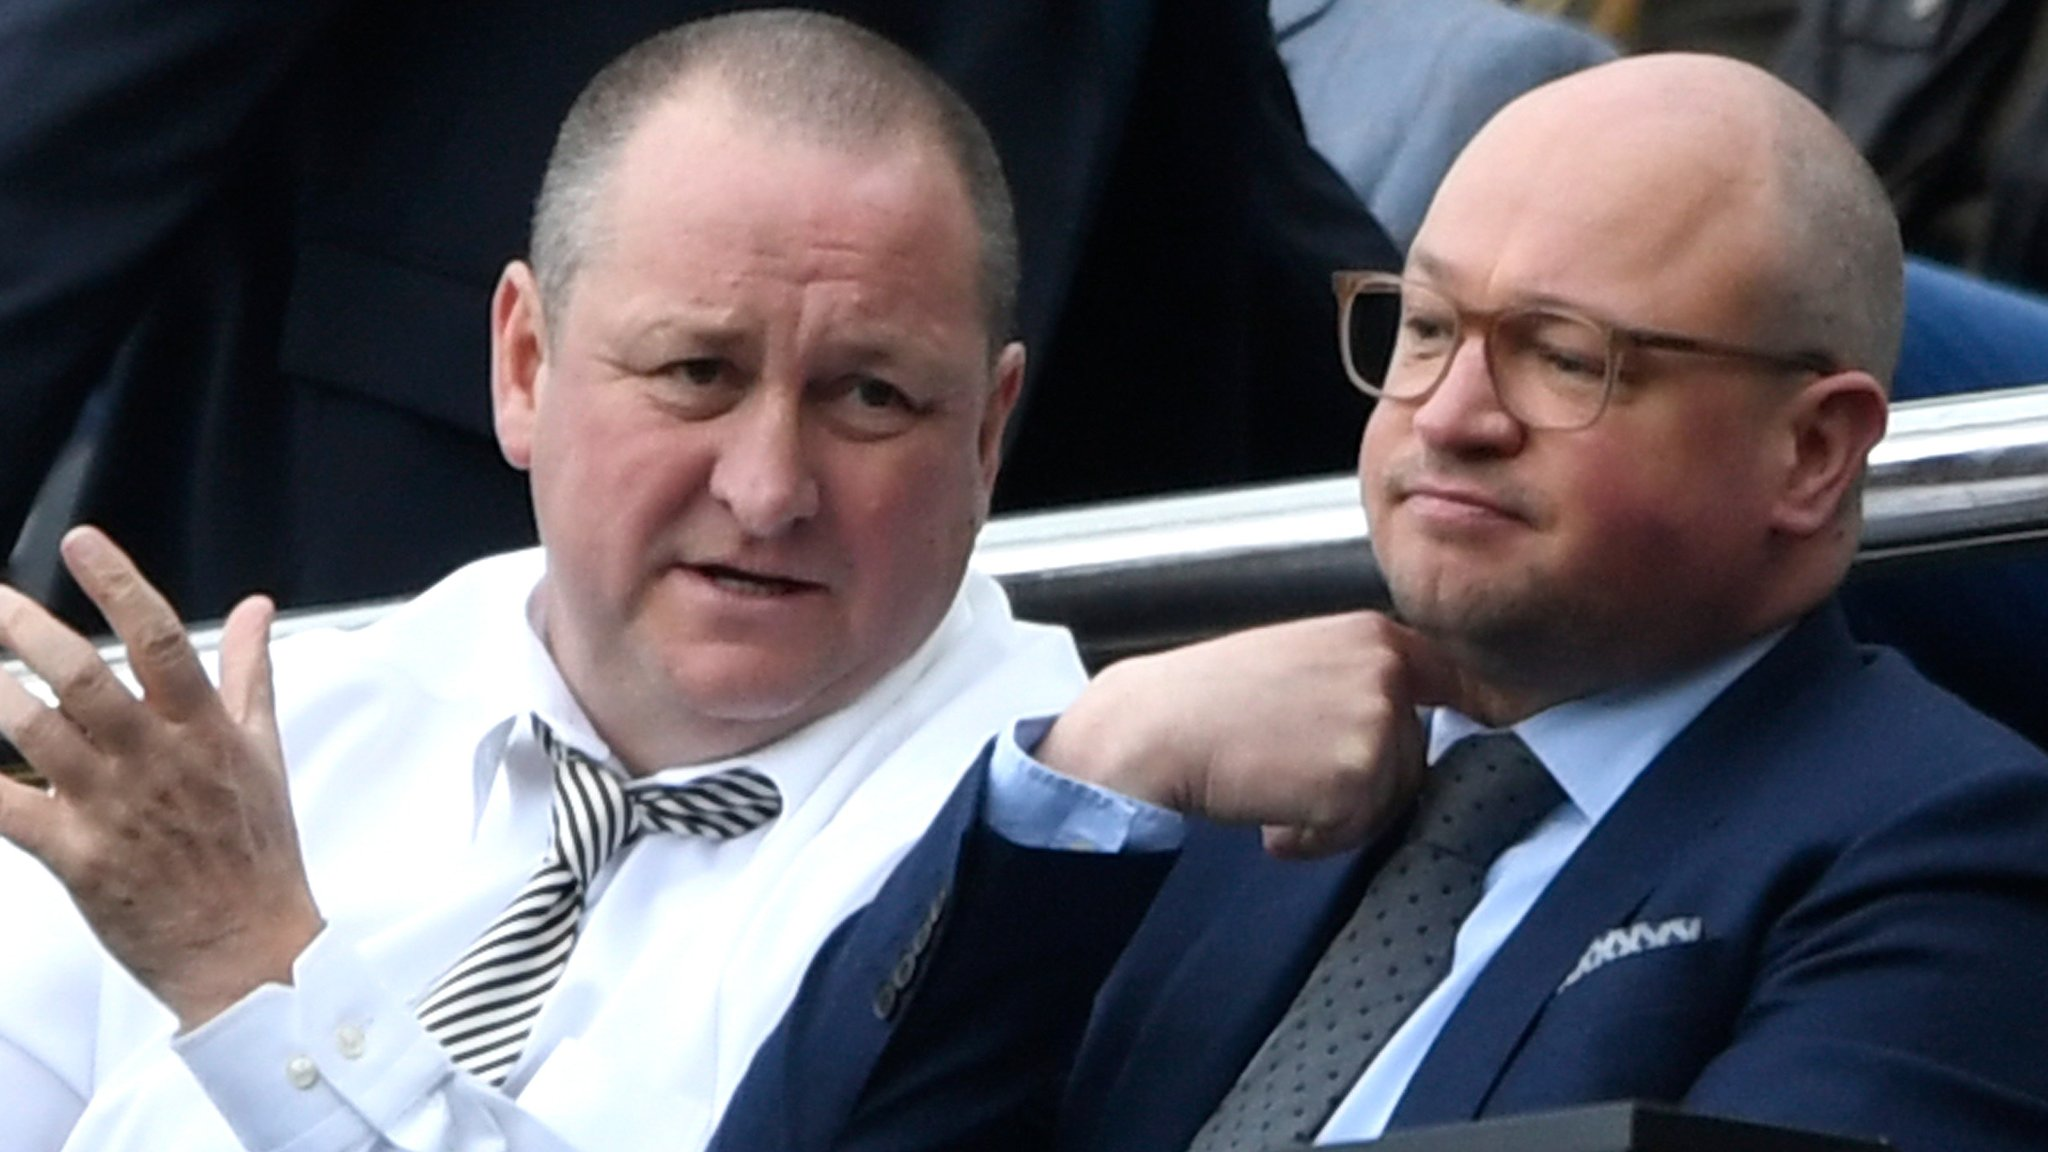 Newcastle took 'financial gamble' with highest-ever EFL wage bill in 2016-17 season